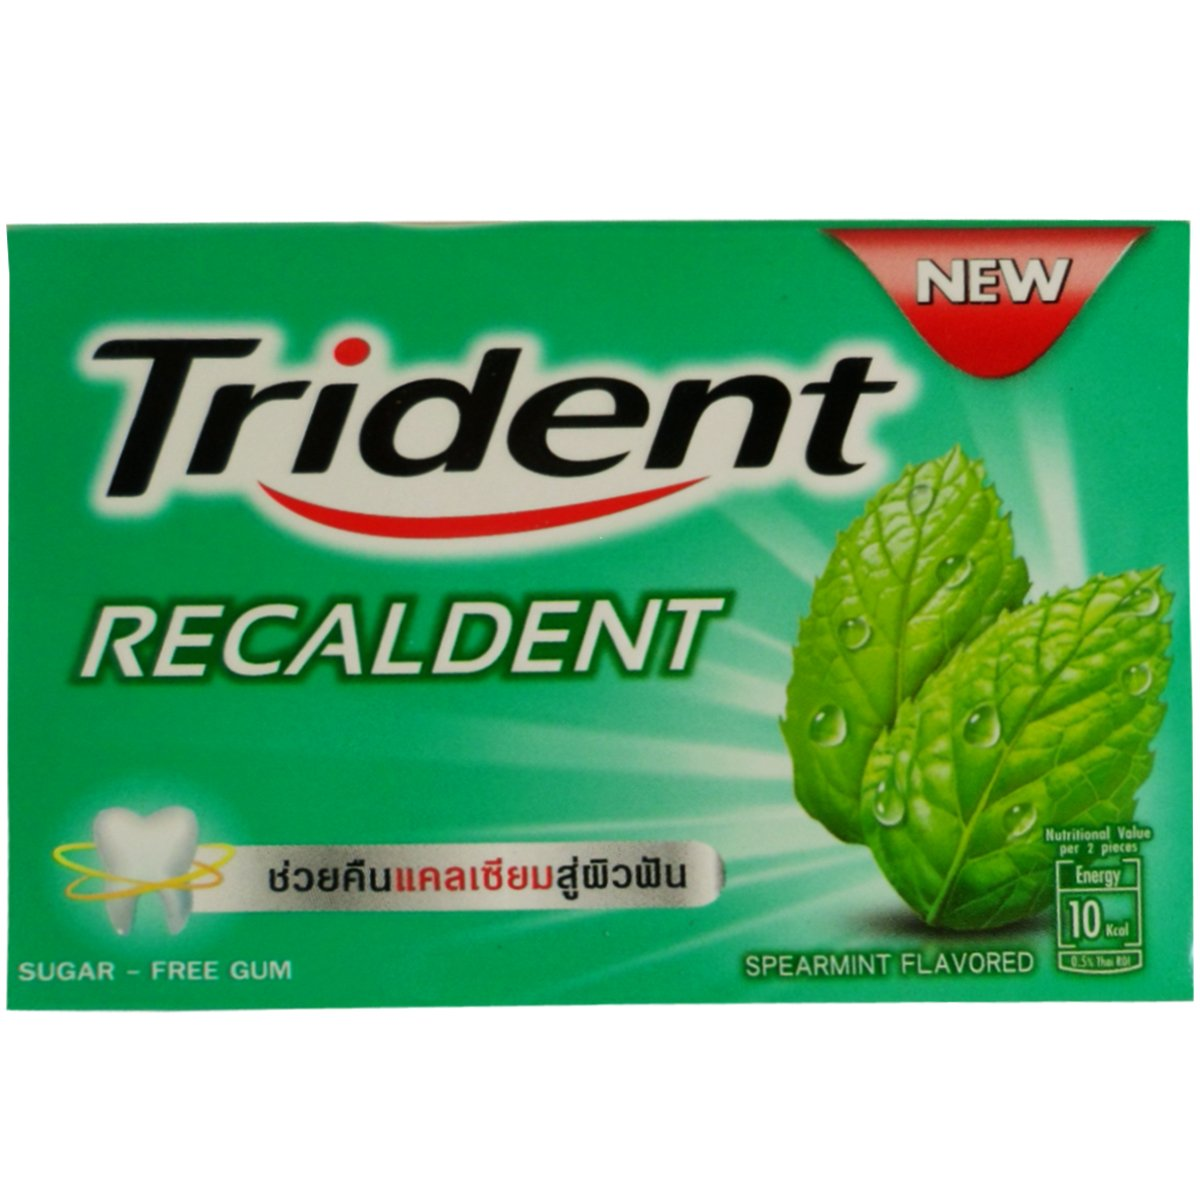 Trident Recaldent Chewing Gum Spearmint Flavored Sugar Free Dental Health Net Wt 12.6 G (9 Pellets) X 9 Boxes